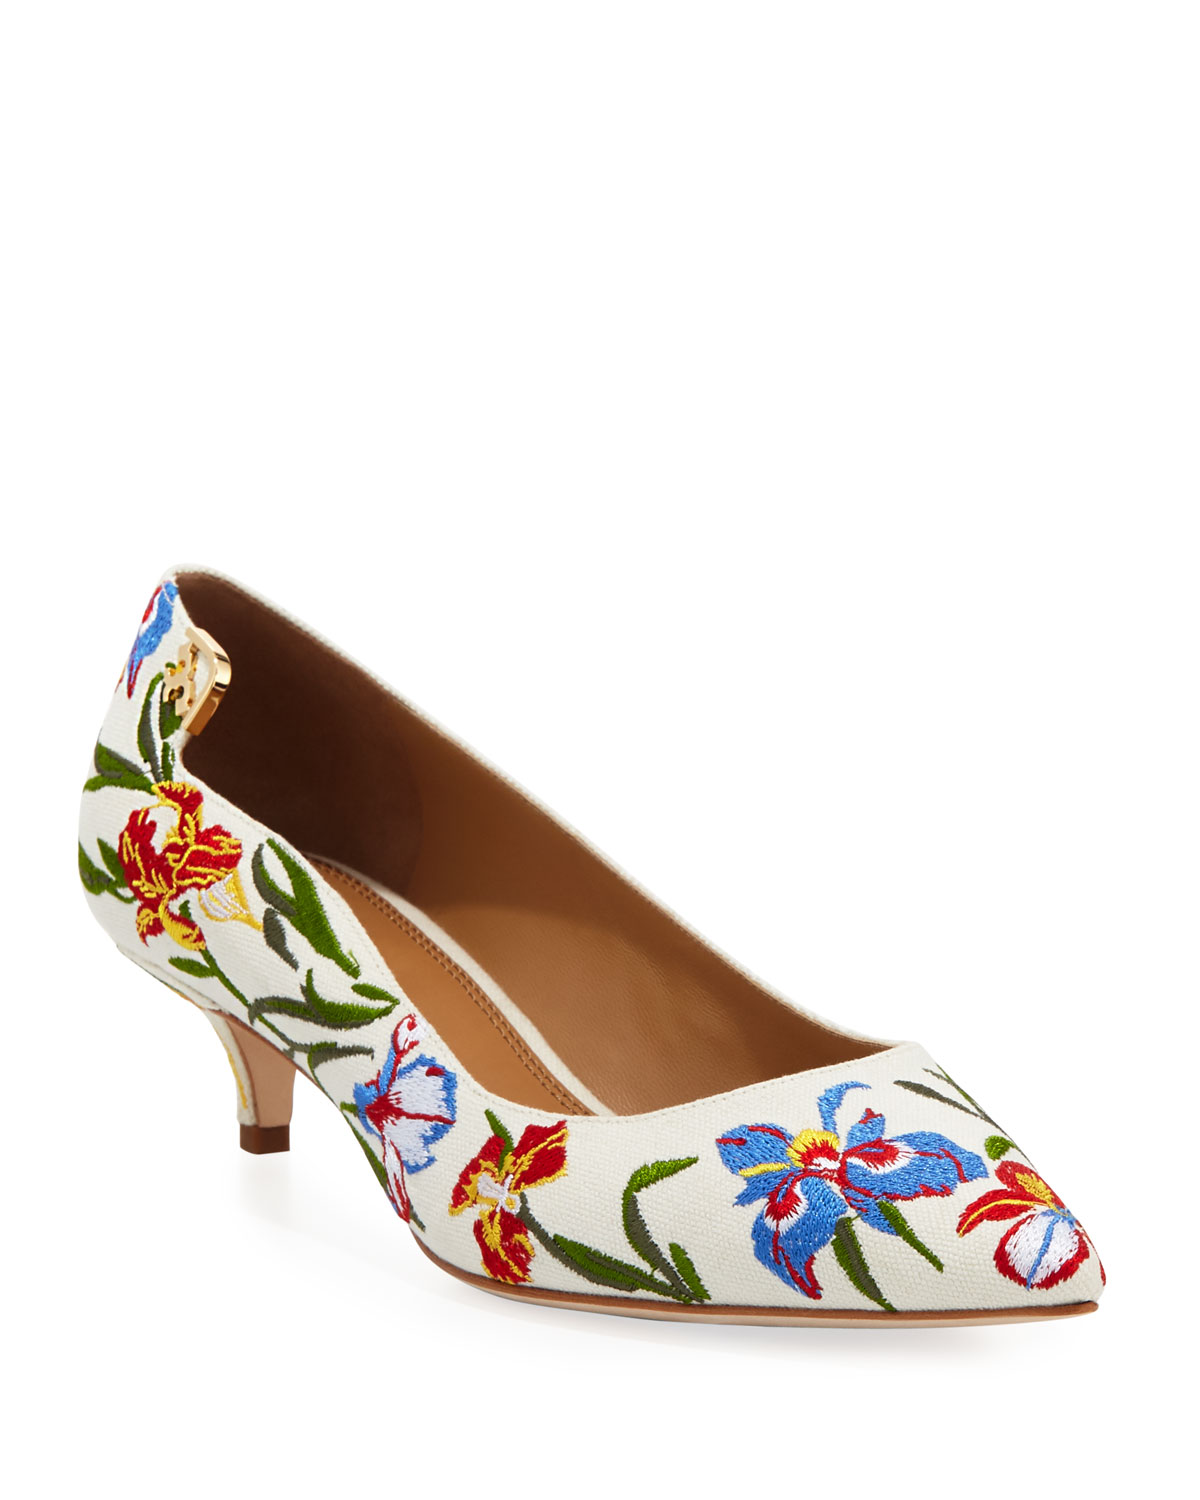 0ca6fafaba6f3 Tory Burch Elizabeth Floral-Embroidered Pumps